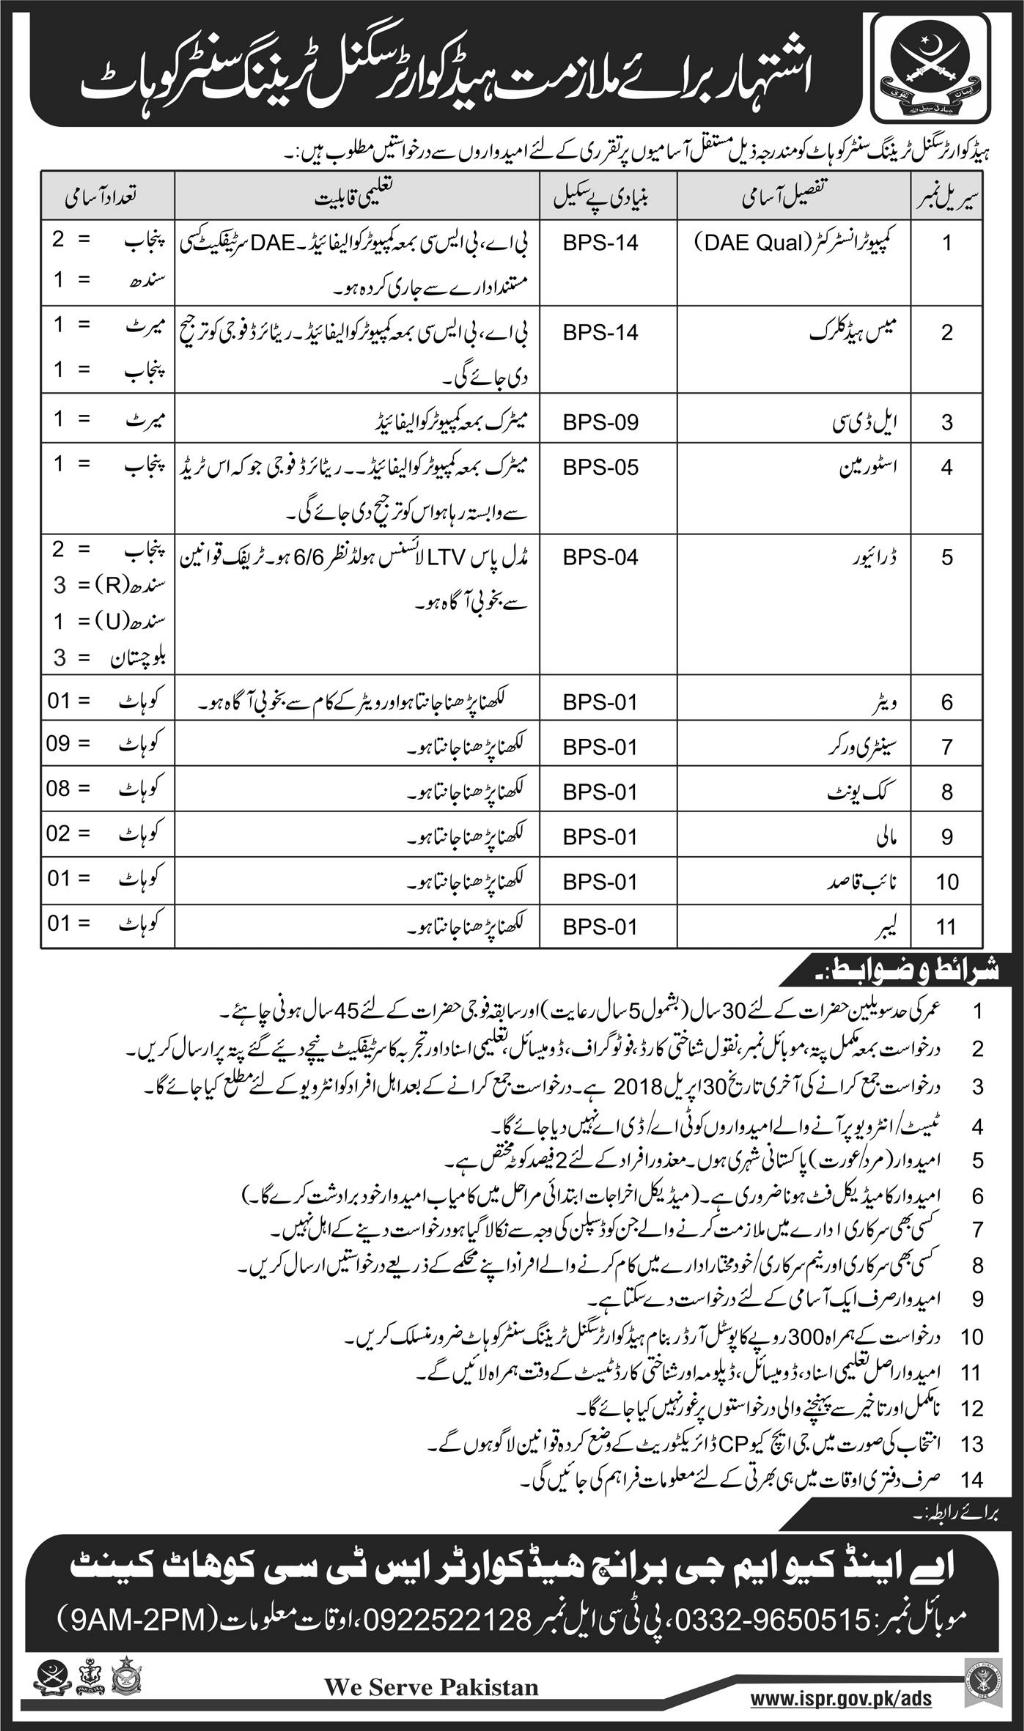 Ammco bus : Pak army jobs online registration form